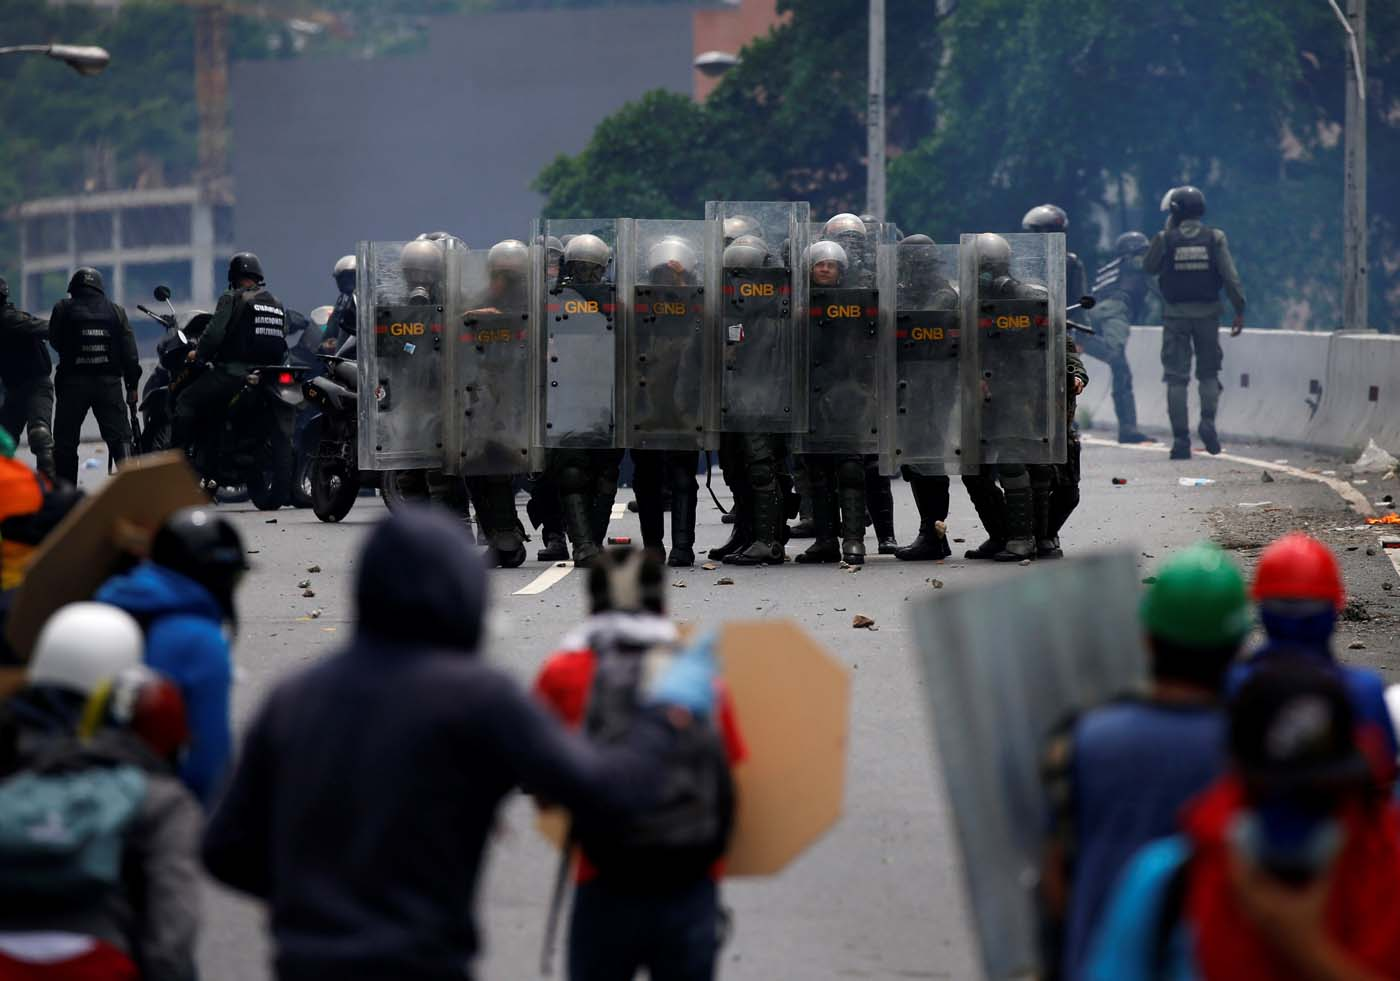 Riot police take position while clashing with opposition supporters rallying against President Nicolas Maduro in Caracas, Venezuela, May 3, 2017. REUTERS/Carlos Garcia Rawlins